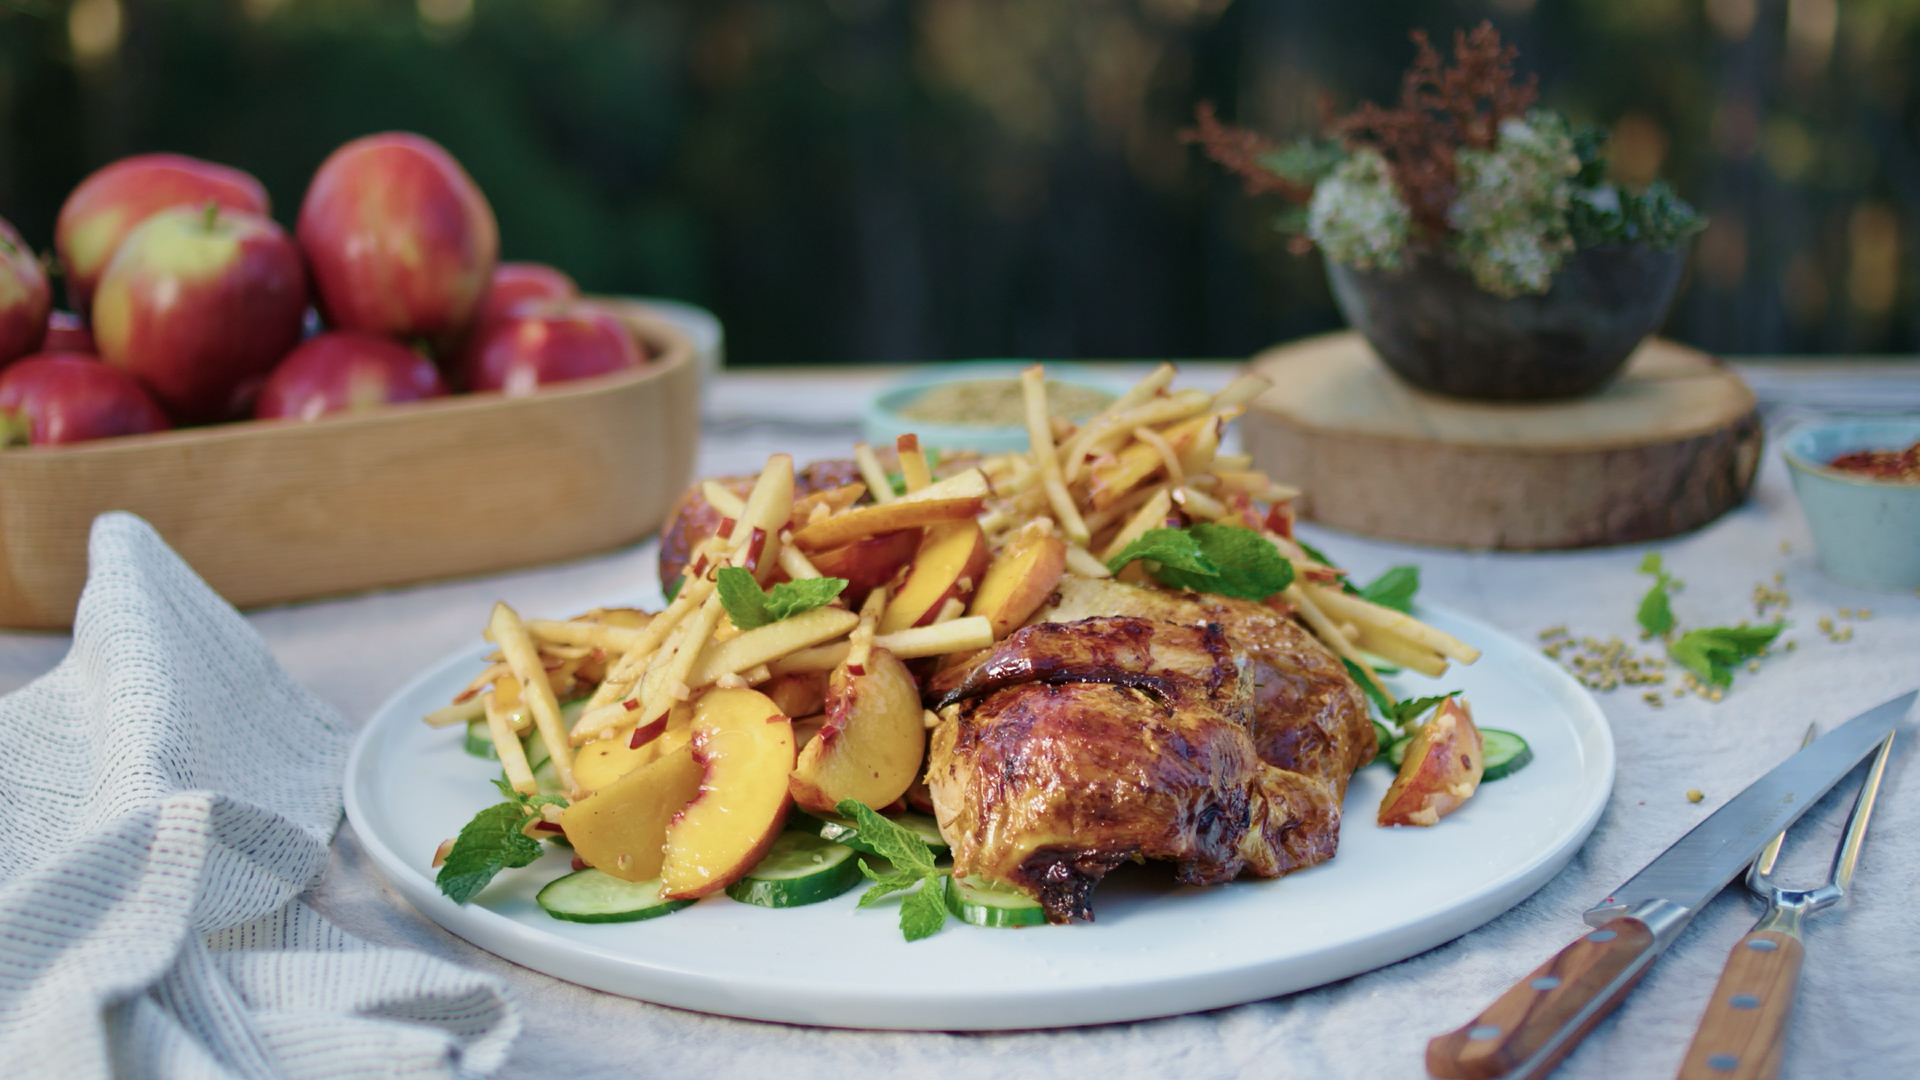 Barbecued Turmeric Chicken with Apple and Peach Salad